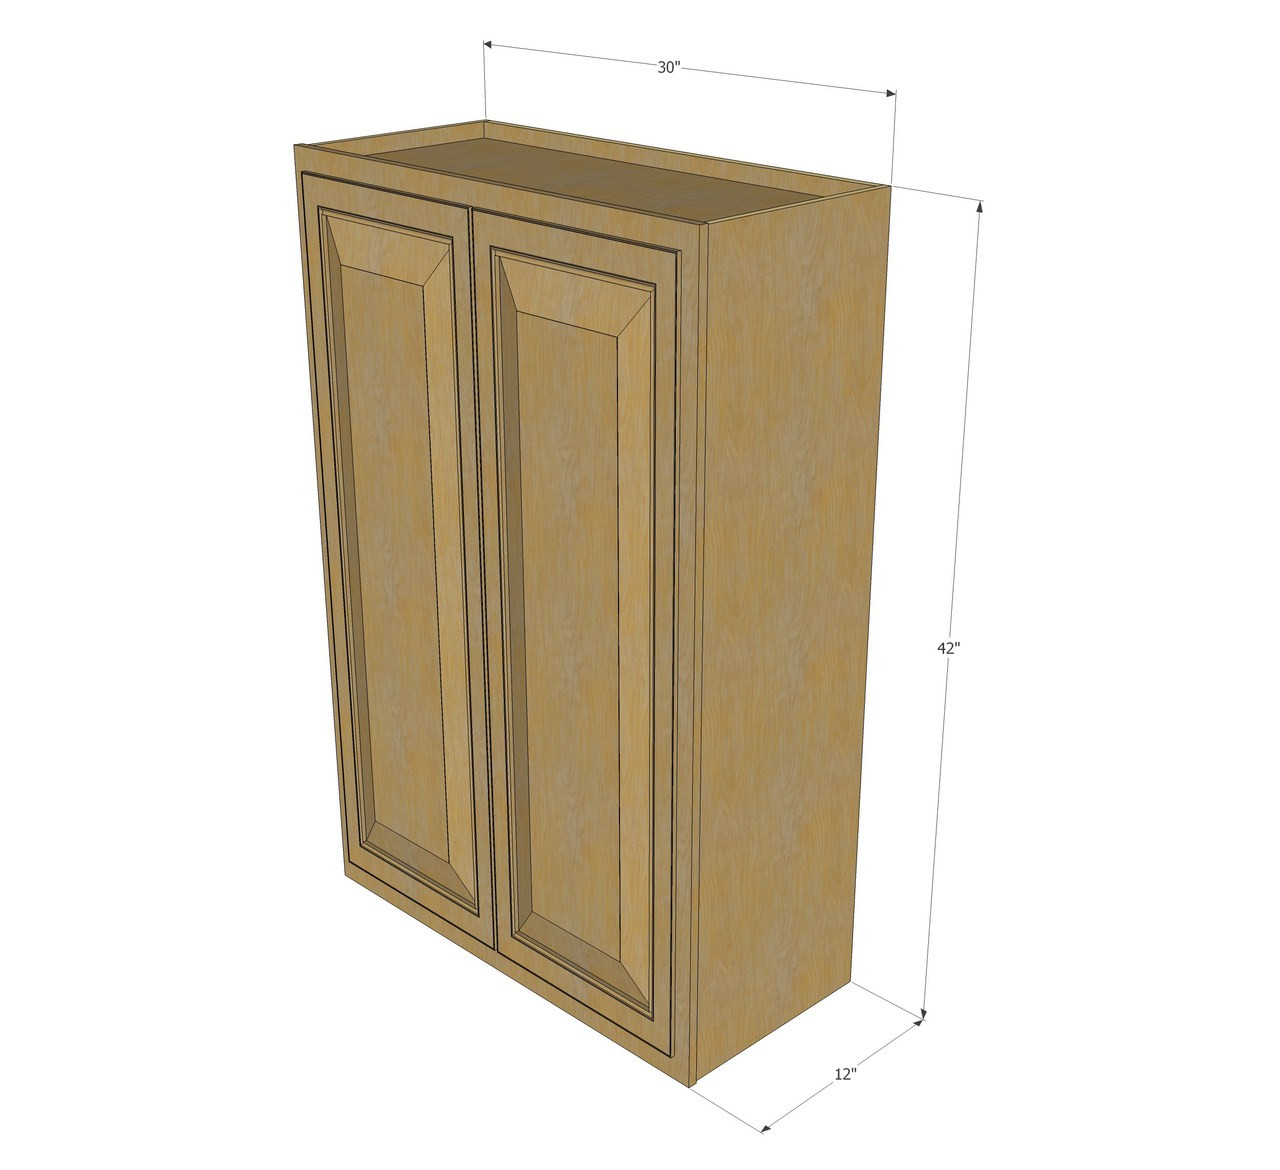 Large Double Door Regal Oak Wall Cabinet 30 Inch Wide X 42 Inch High Kitchen Cabinet Warehouse